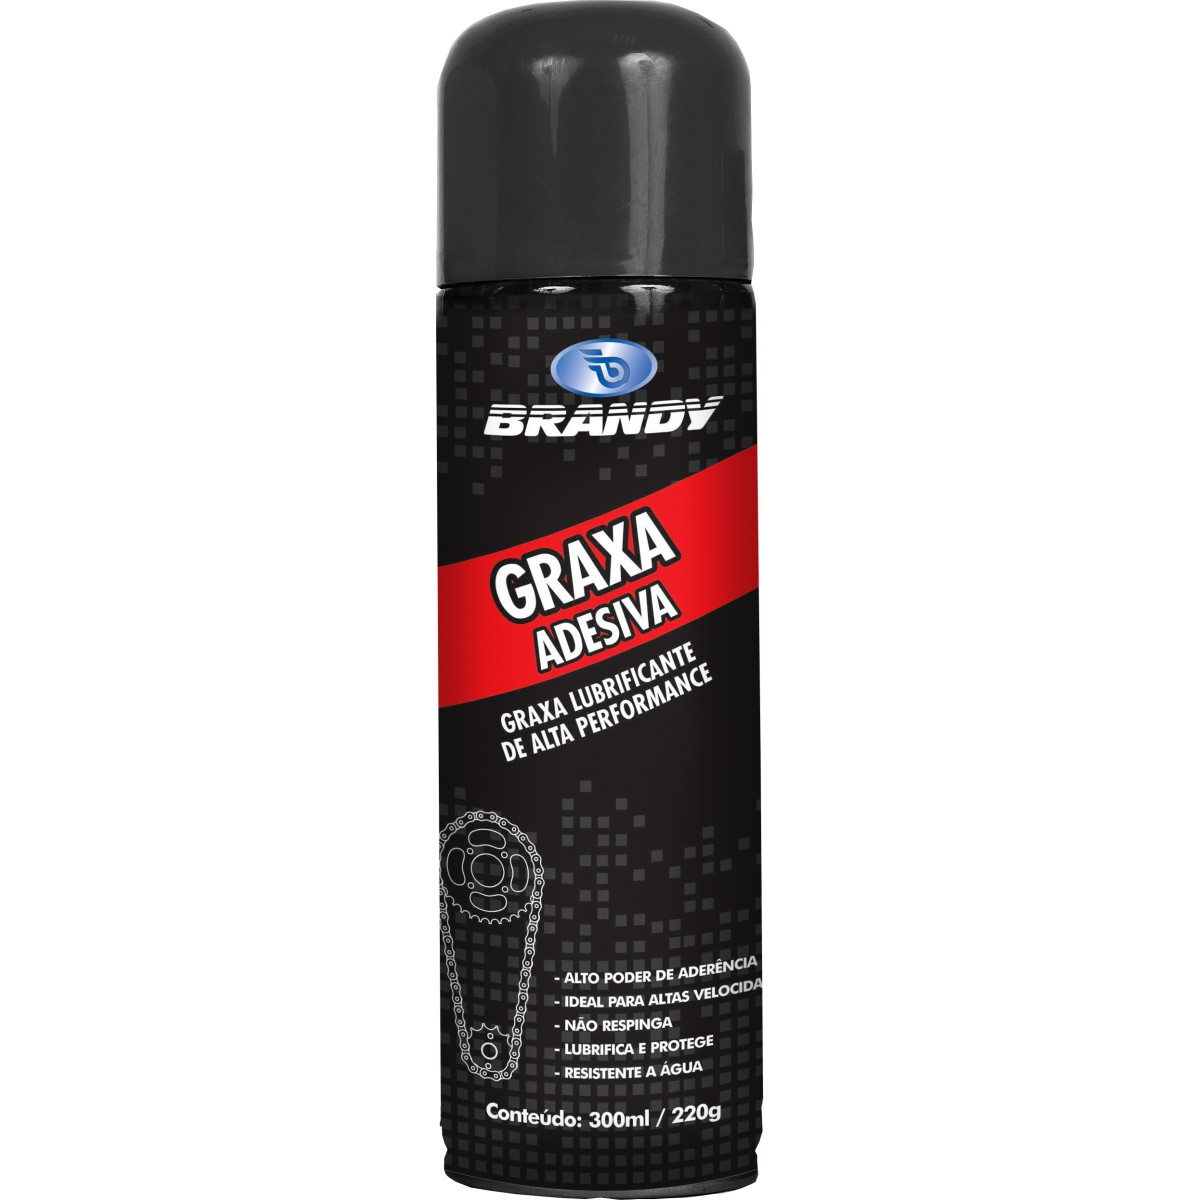 KIT C/ 3 GRAXA BRANDY ADESIVA SPRAY LATA 300ml/220g